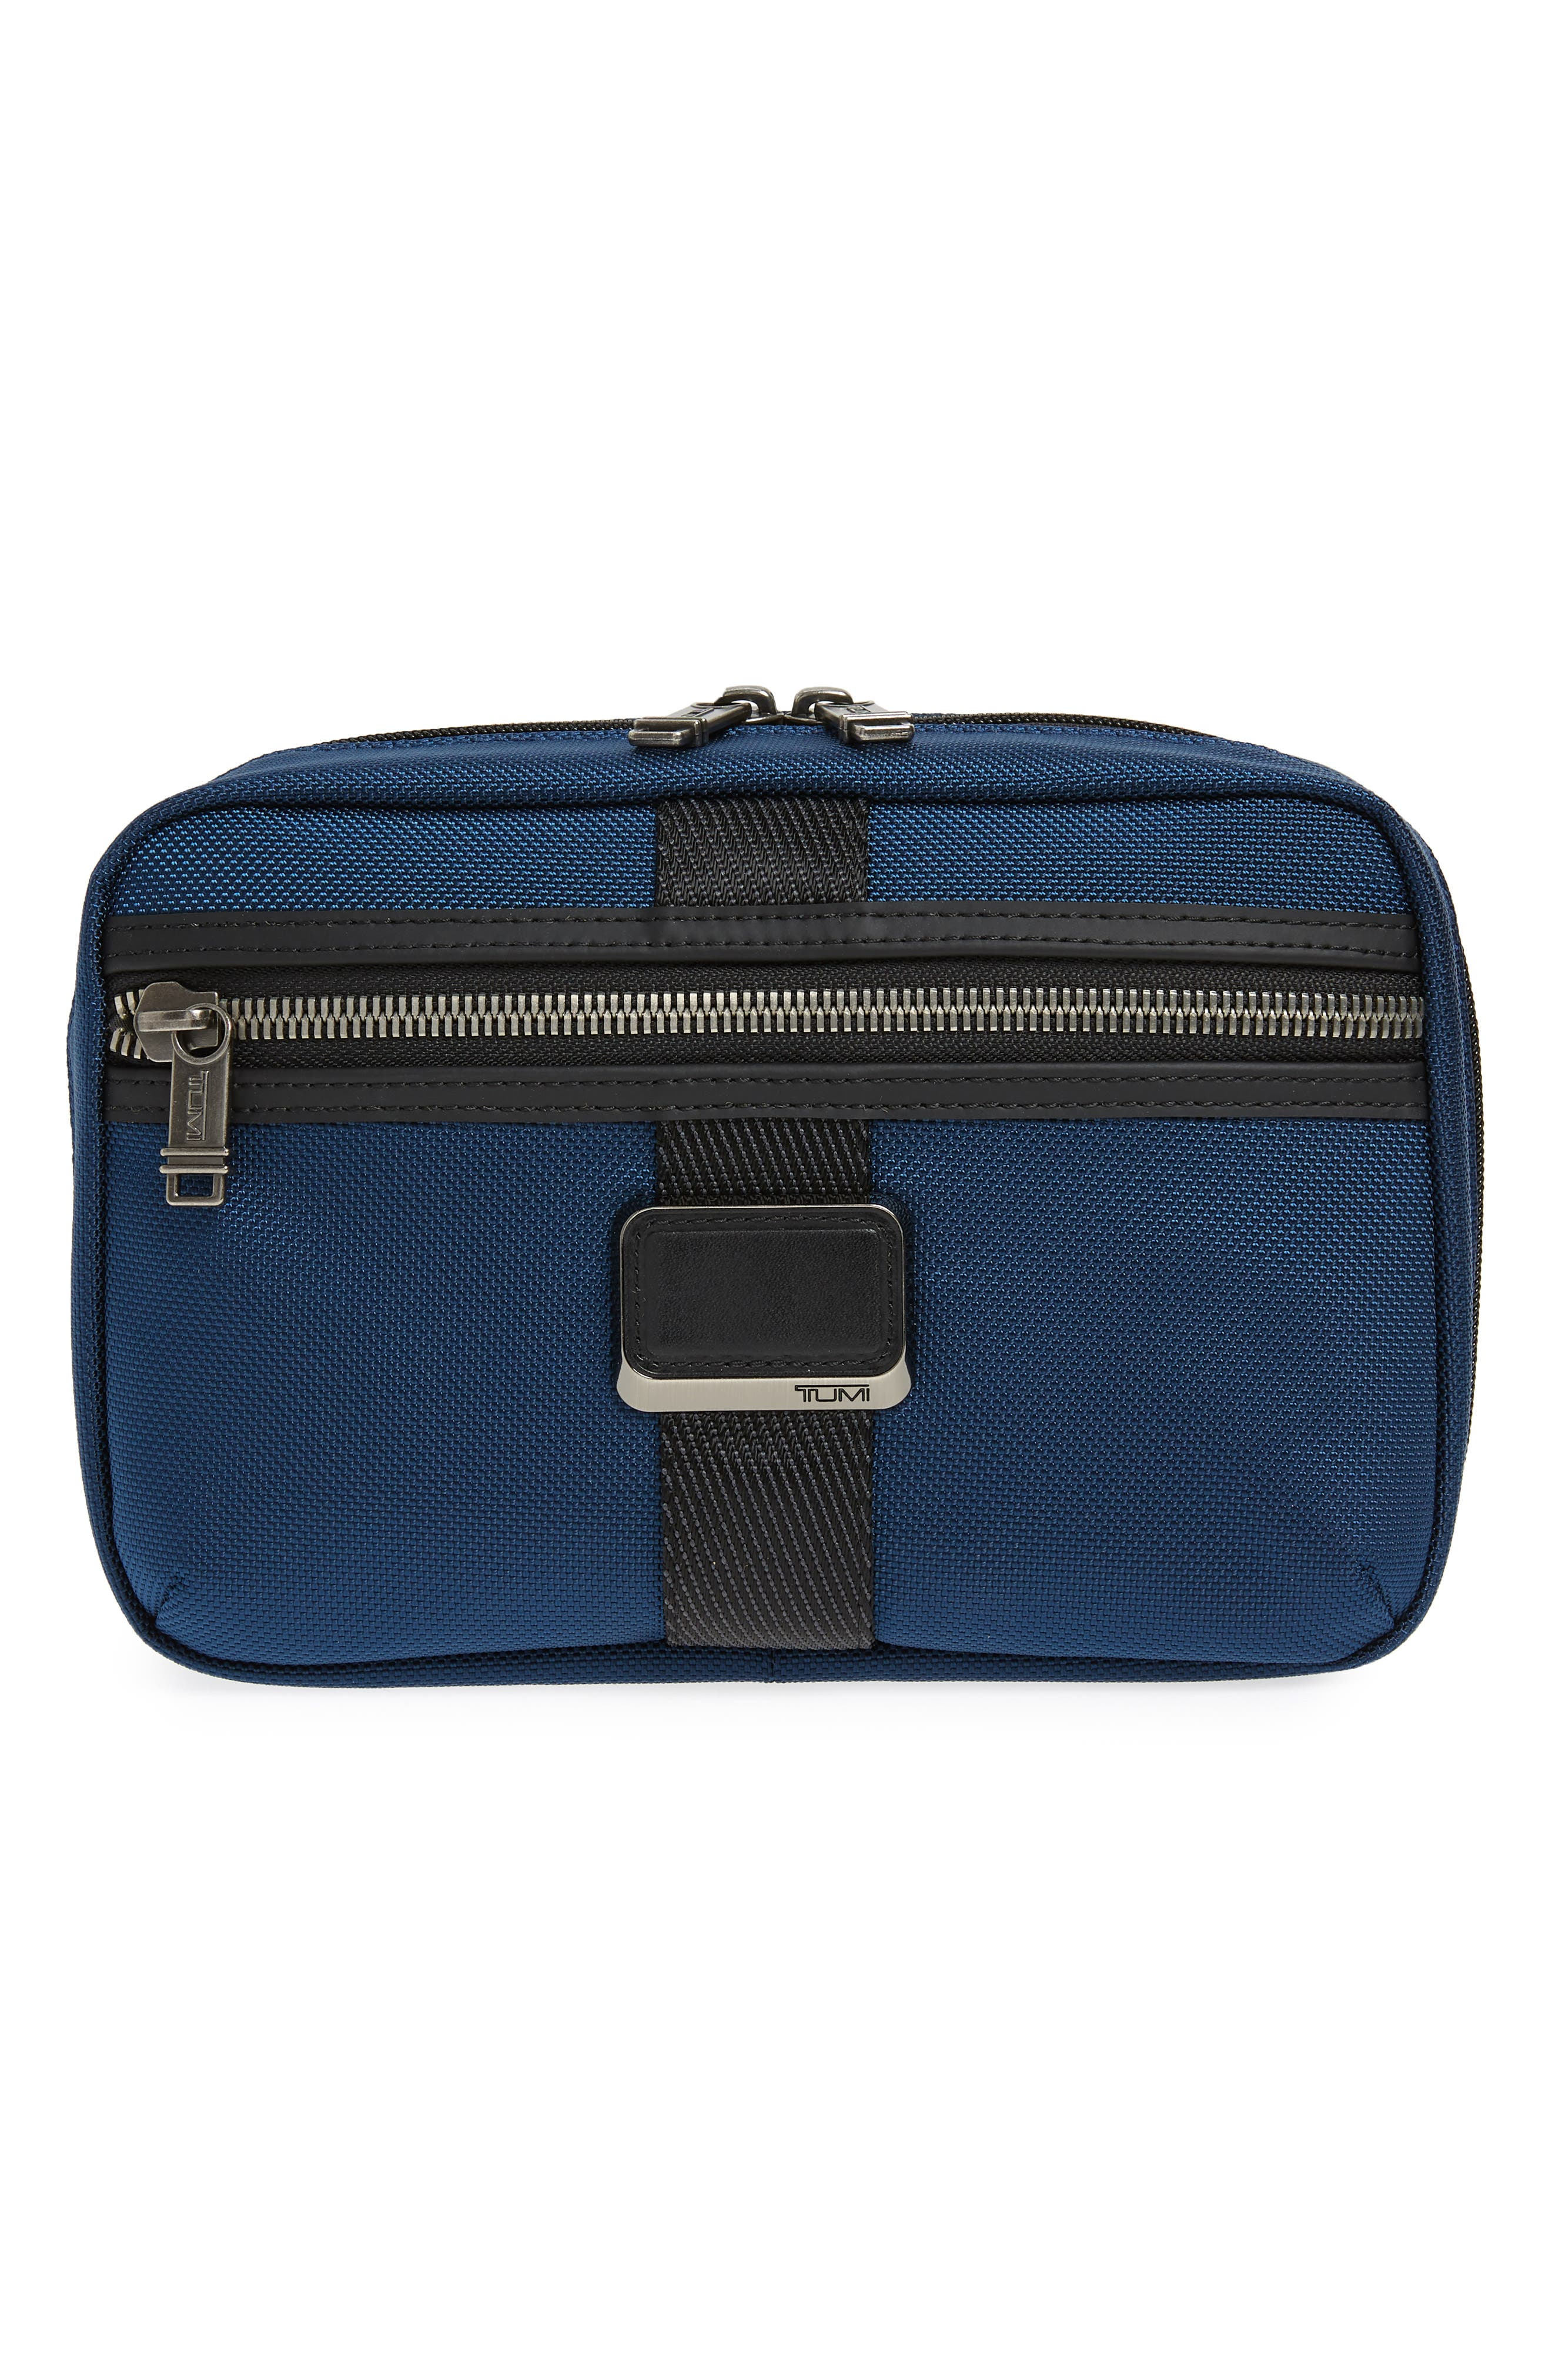 TUMI,                             Alpha Bravo - Reno Travel Kit,                             Main thumbnail 1, color,                             415